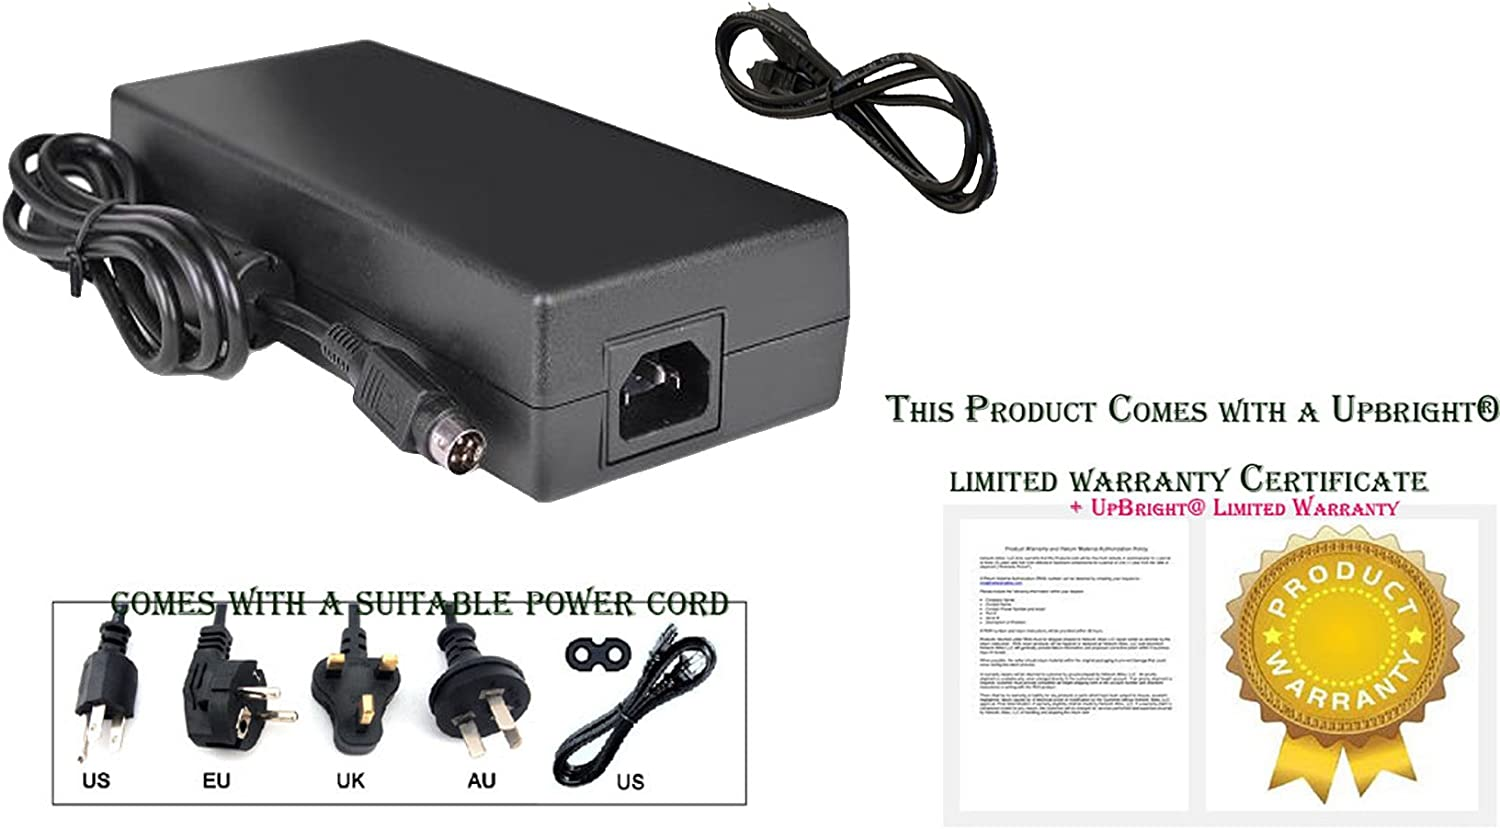 UpBright 4-Pin DIN 12V 15A Original OEM AC//DC Adapter Compatible with FSP Group Inc FSP180-AHAN1 FSP180AHAN1 9NA1802101 9NA1802100 12VDC 15.0A 180W Switching Power Supply Cord Cable Battery Charger